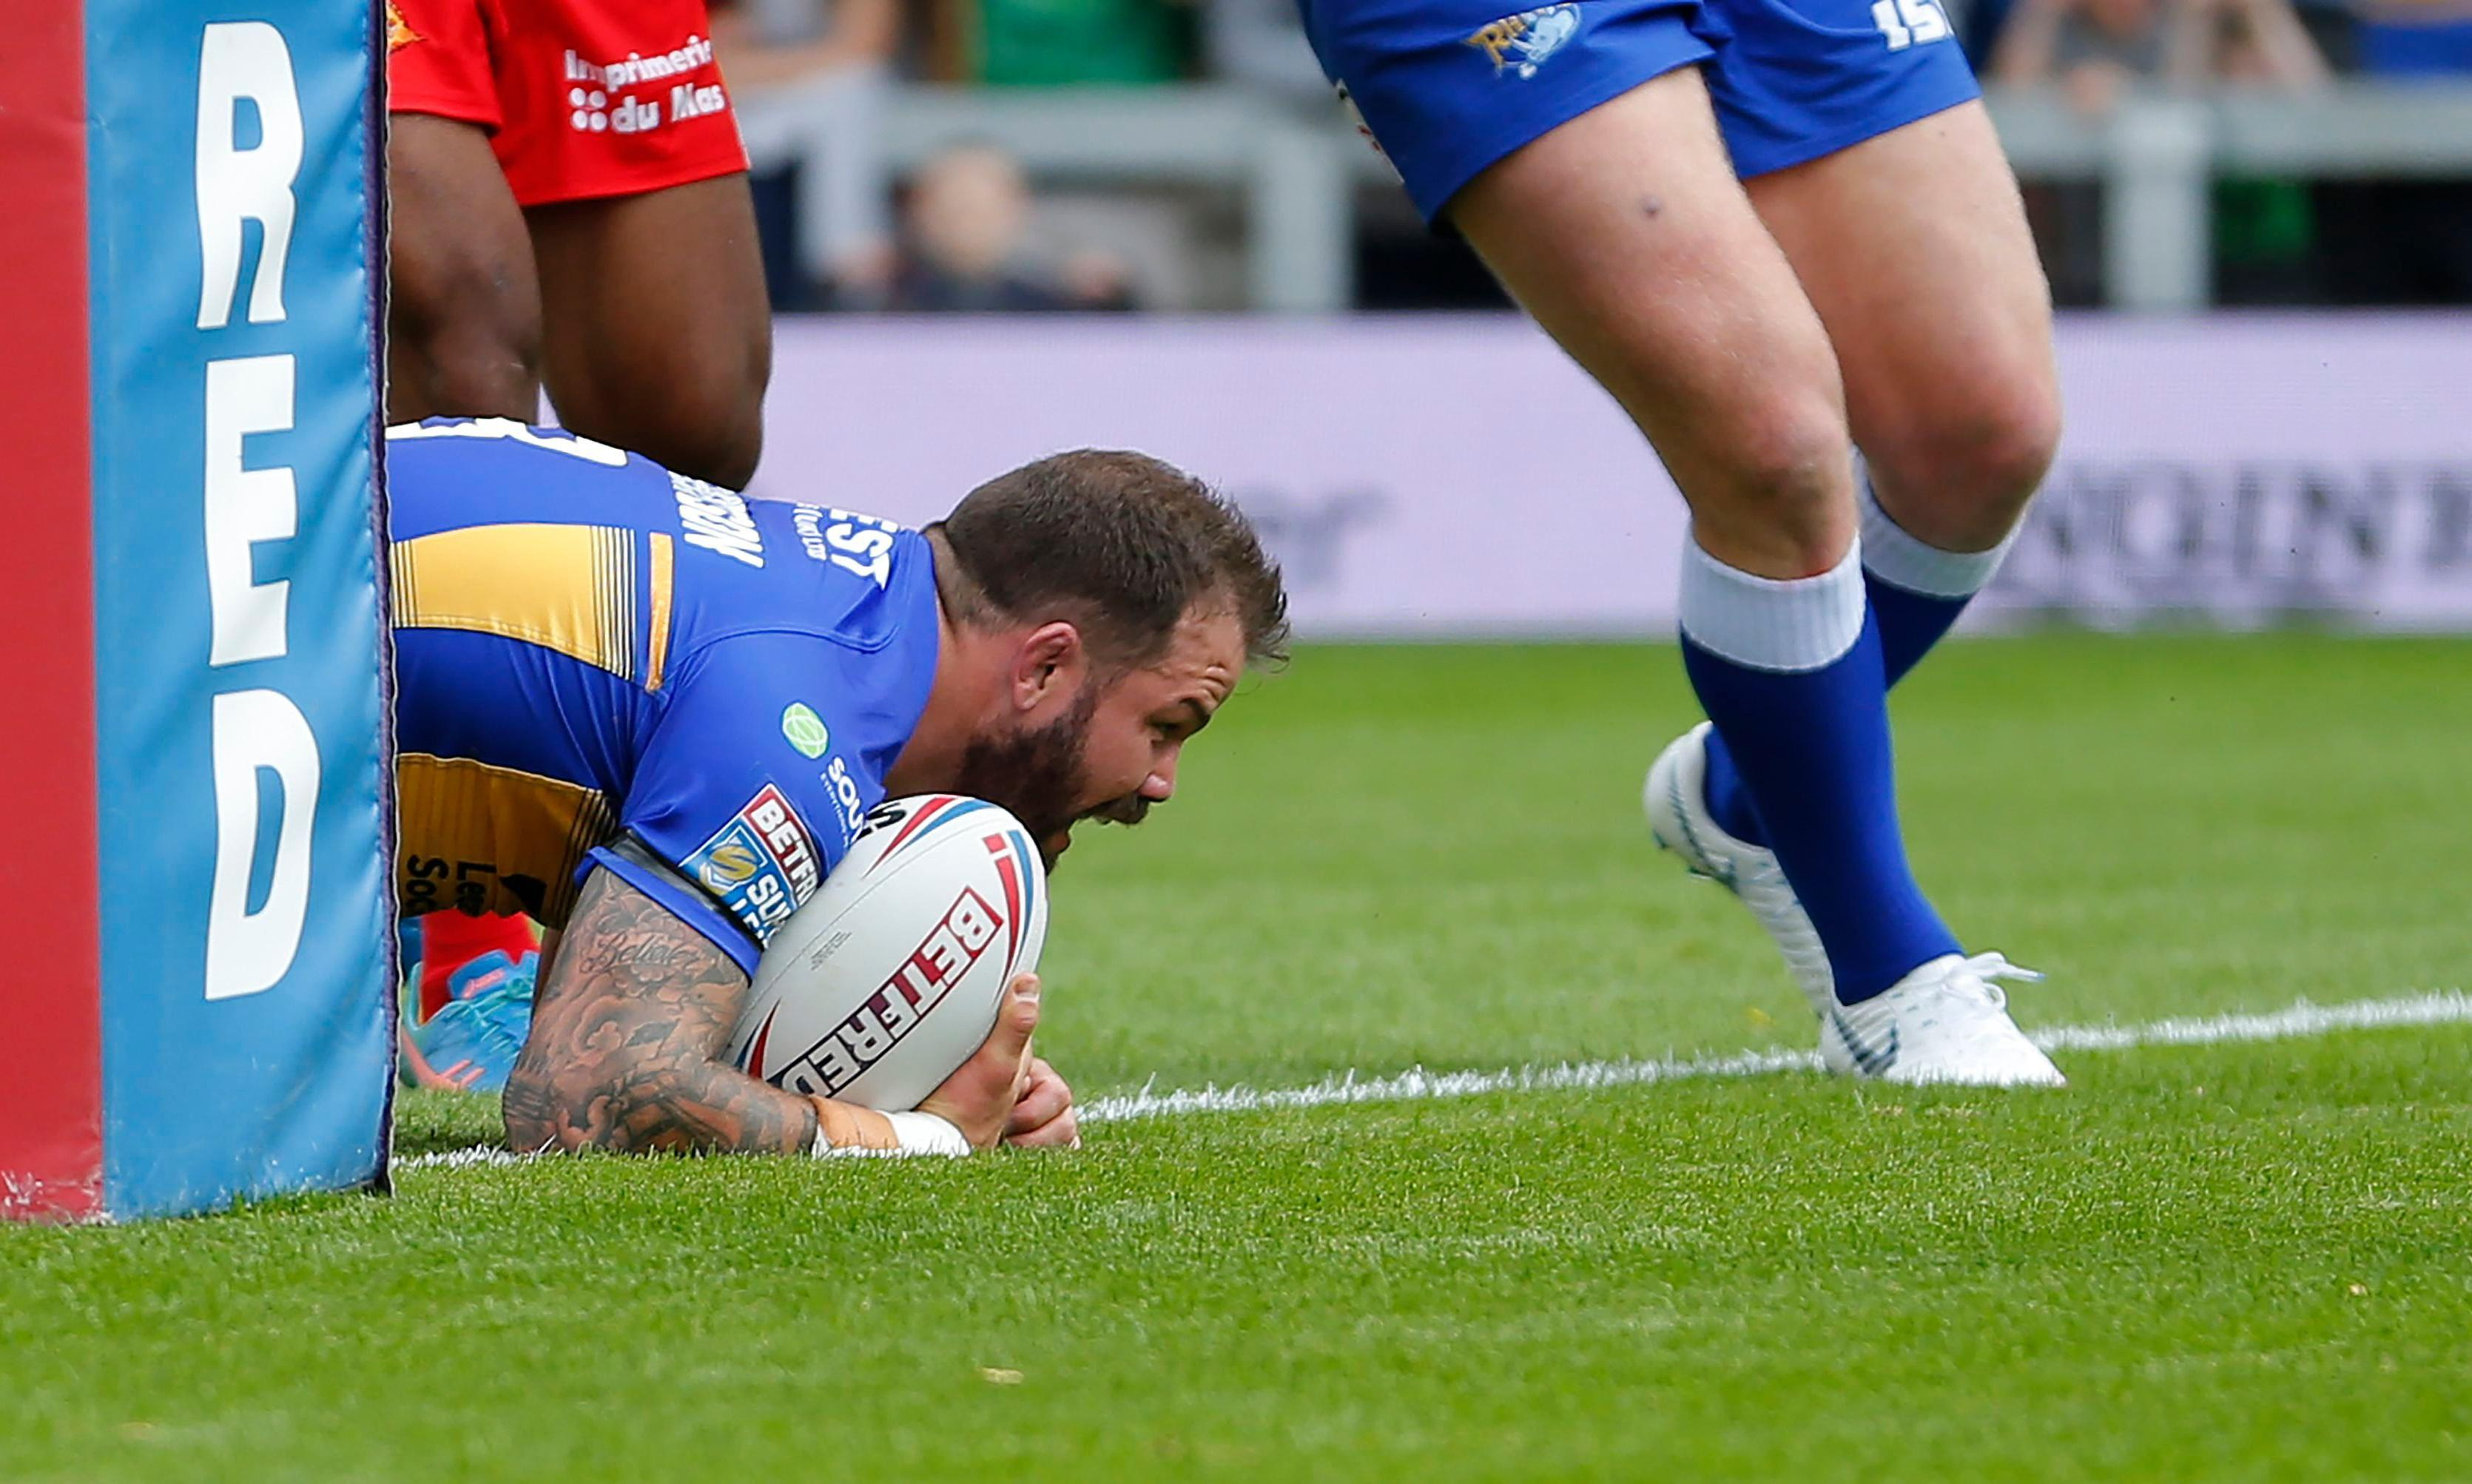 Leeds increase their survival hopes with vital victory over Catalans